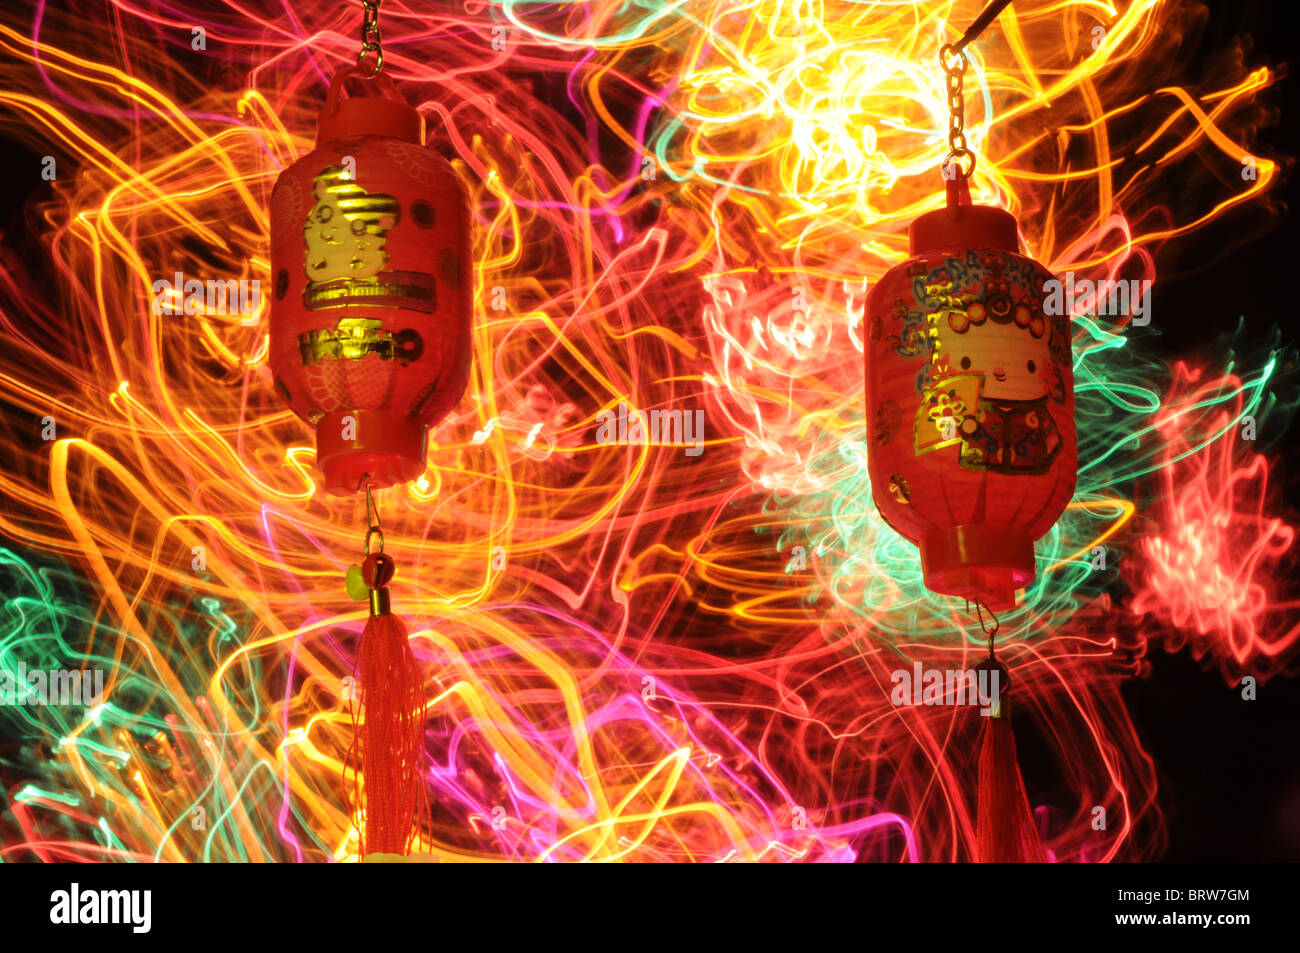 Chinese new year celebrations with lantern and bright swirling colorful movement of vibrant lights behind - Stock Image